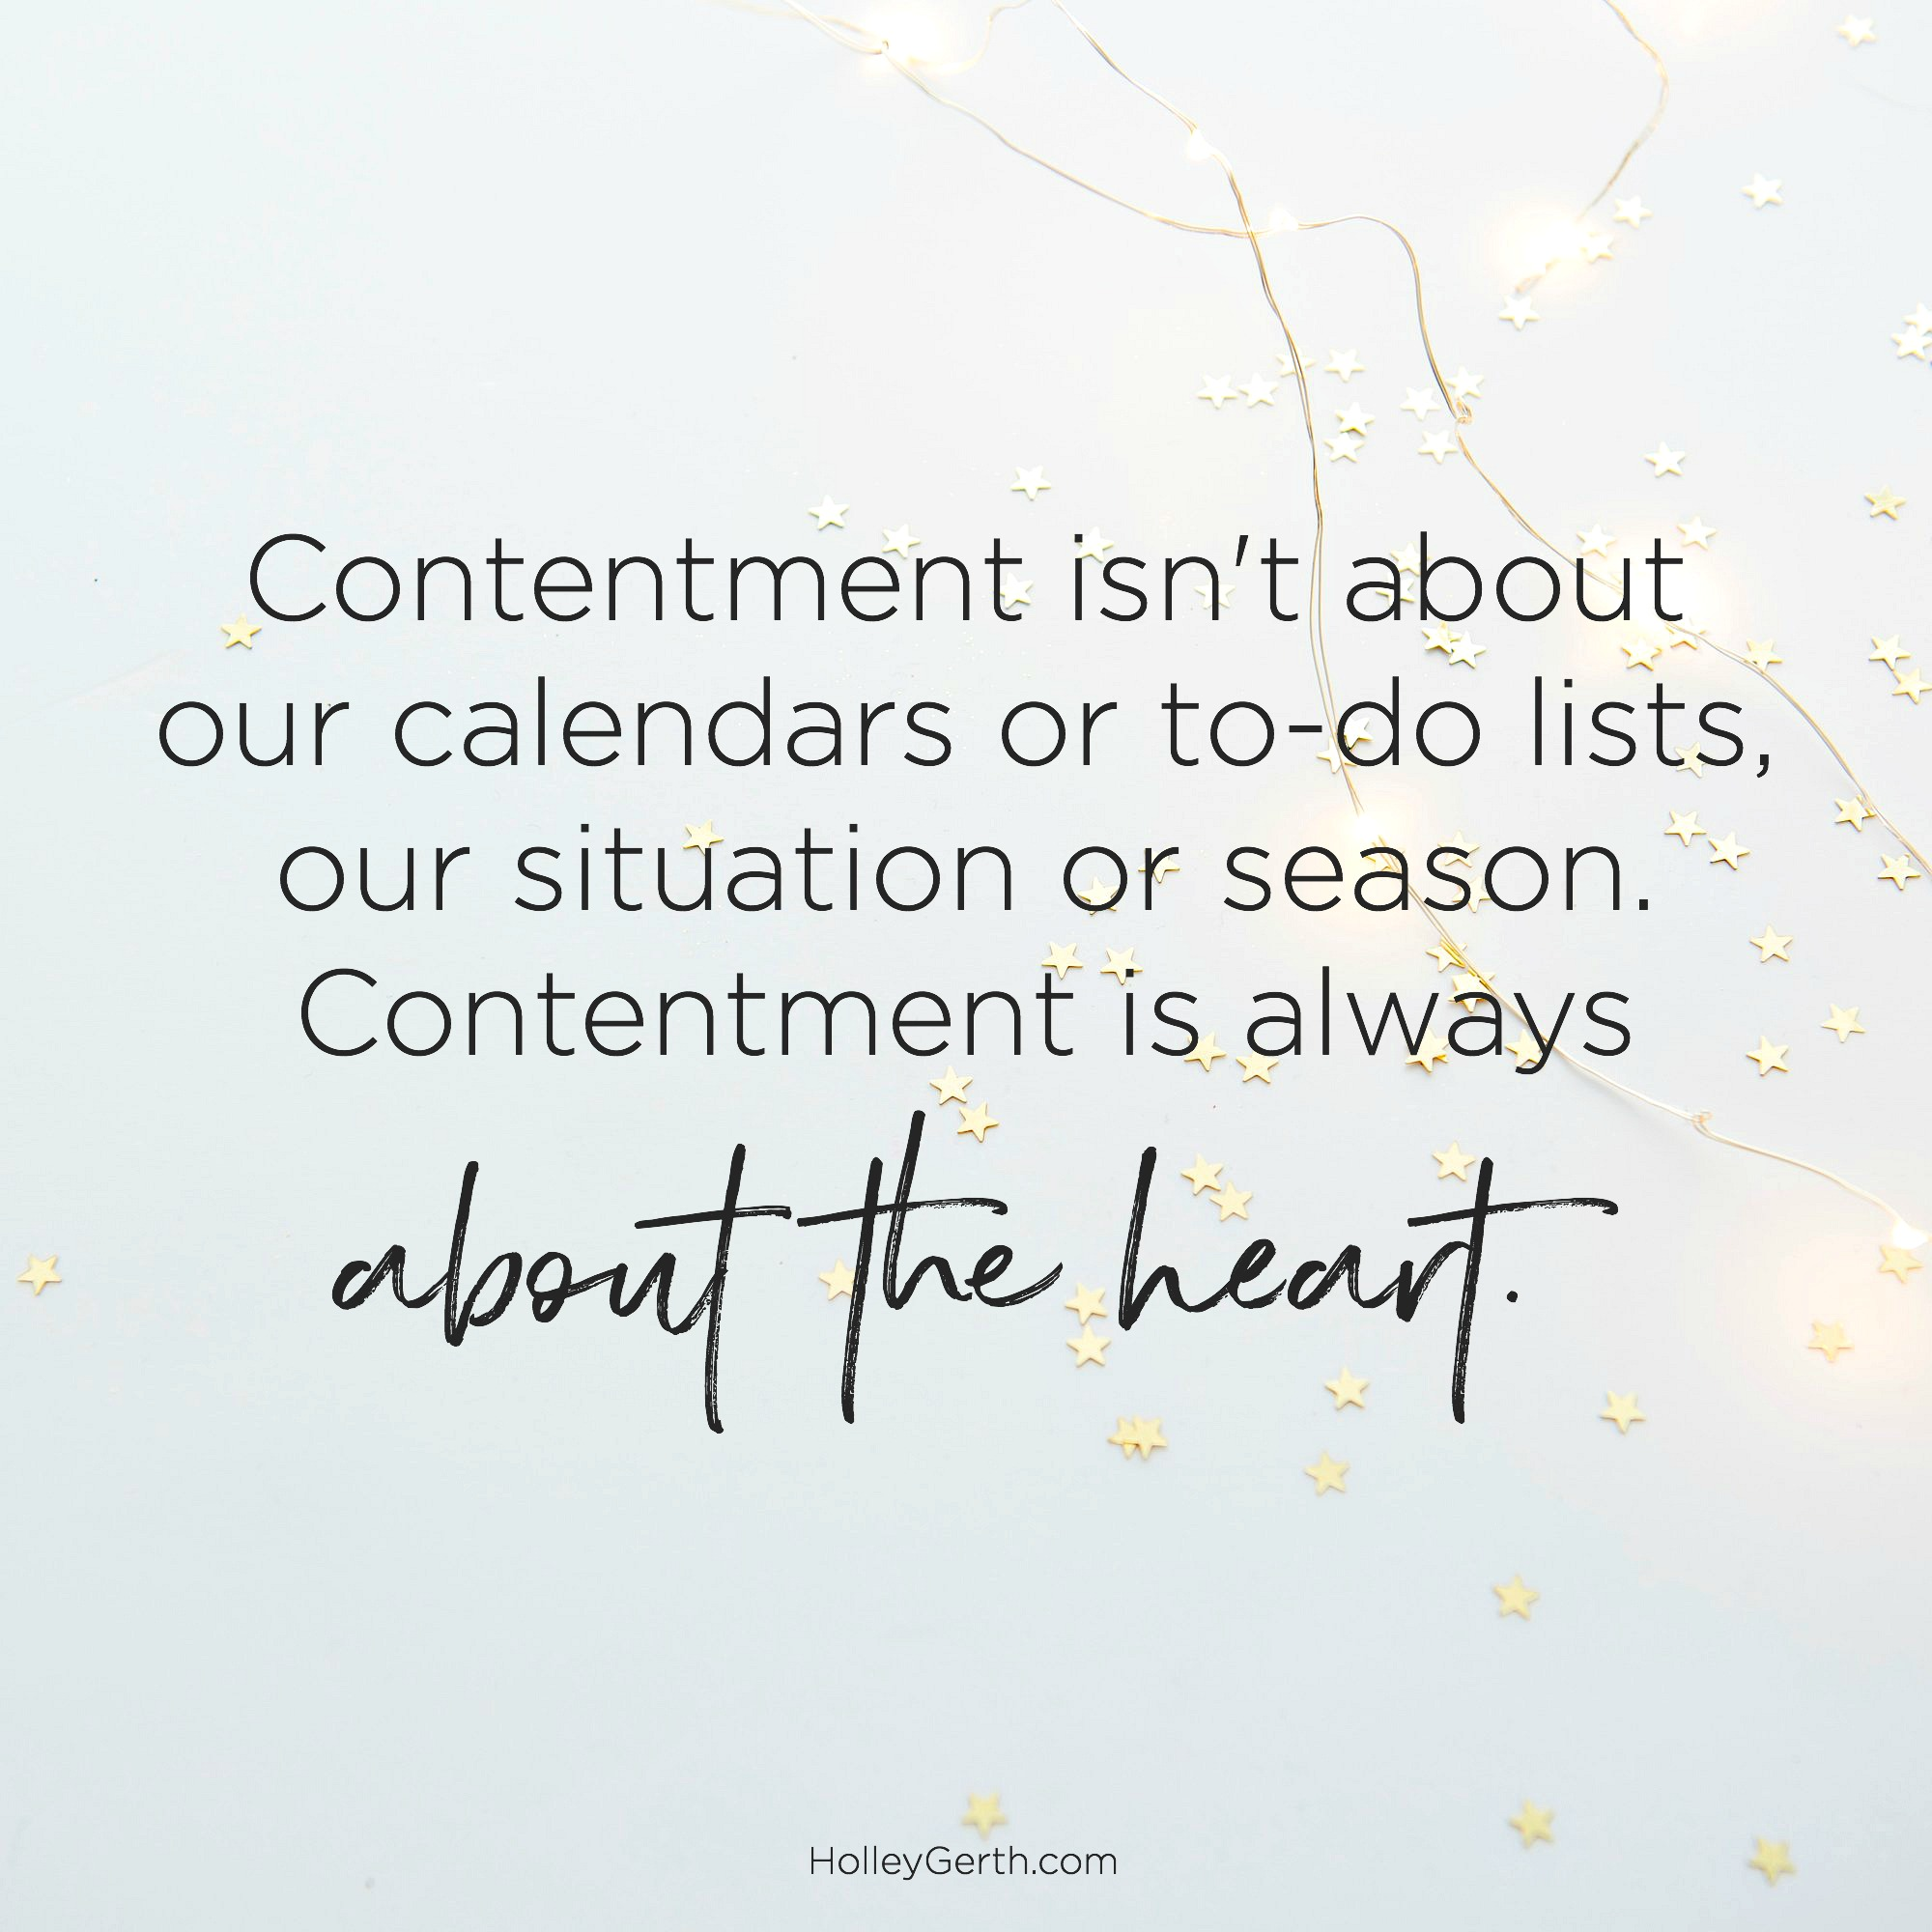 Contentment isn't about our calendars or to-do lists, our situation or season. Contentment is always about the heart.